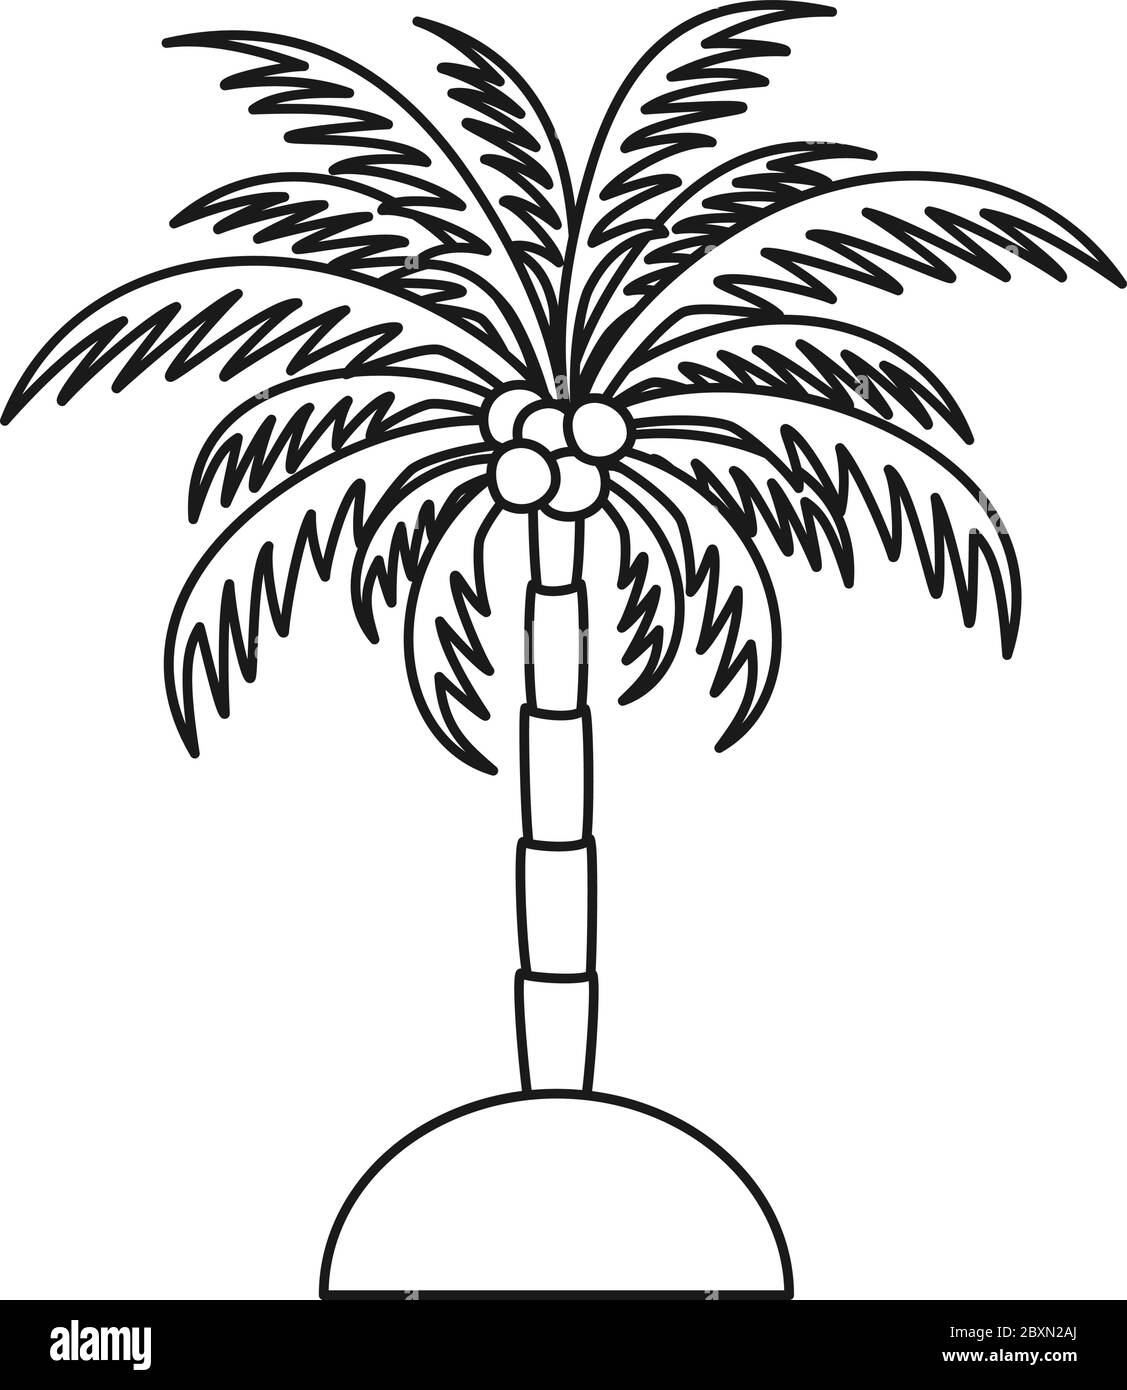 Line Art Black And White Palm Tree Stock Vector Image Art Alamy